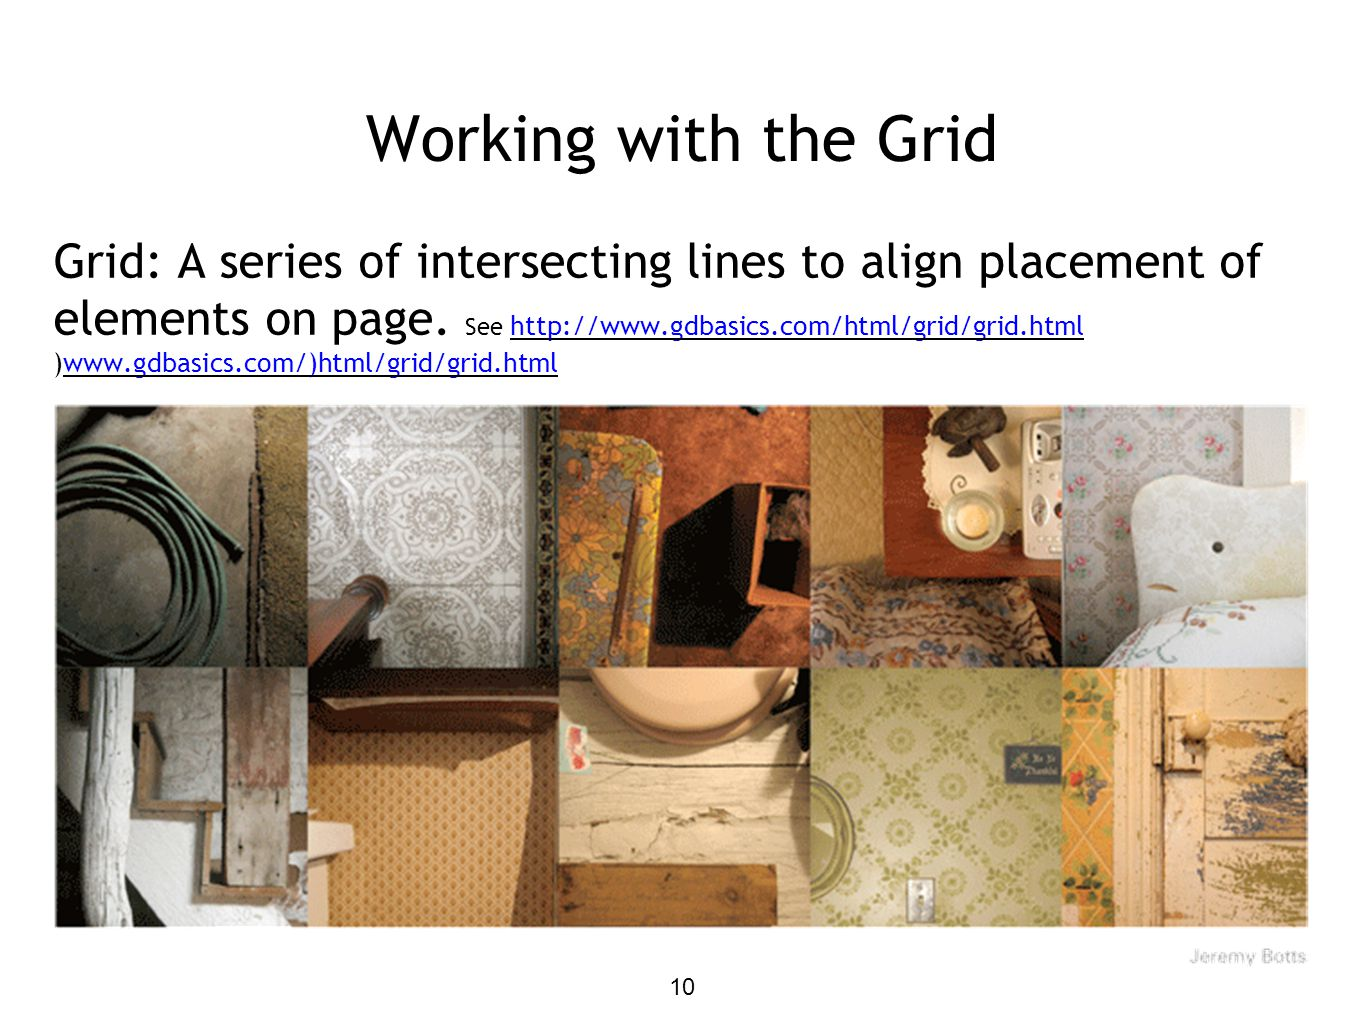 Working with the Grid Grid: A series of intersecting lines to align placement of elements on page. See http://www.gdbasics.com/html/grid/grid.html )ww